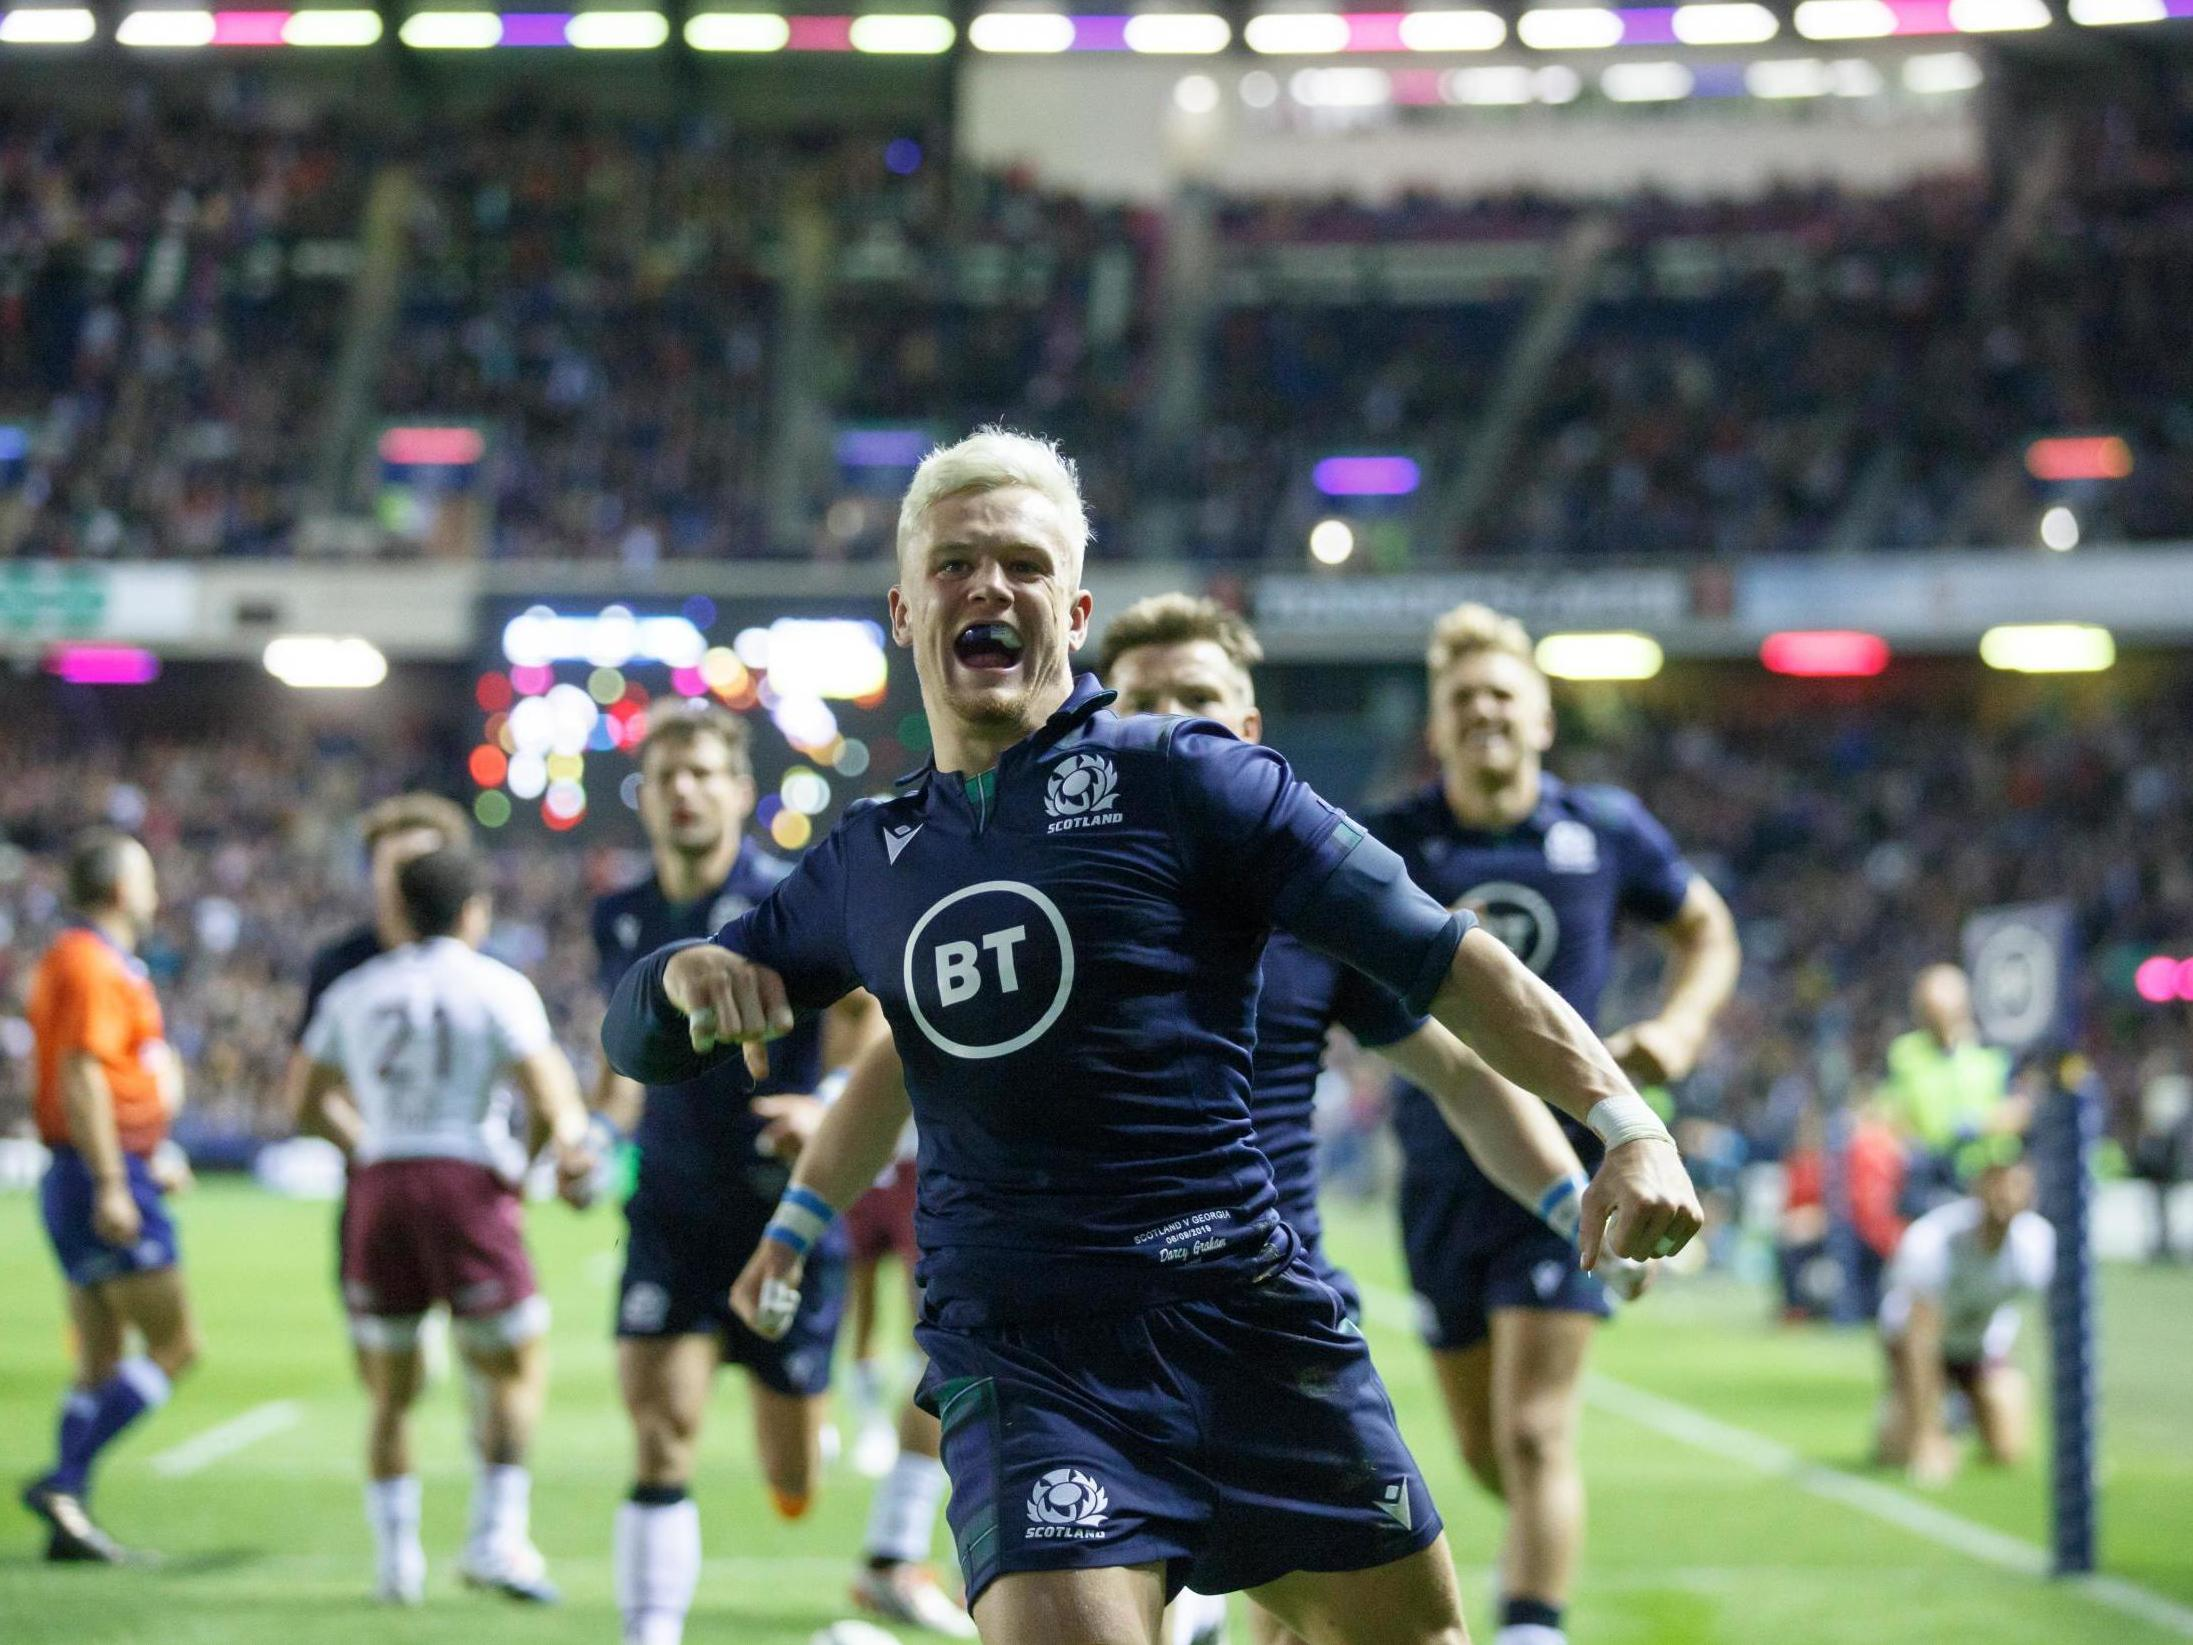 Rugby World Cup – Scotland profile: Full squad, head coach, fixtures, key player, prediction and odds